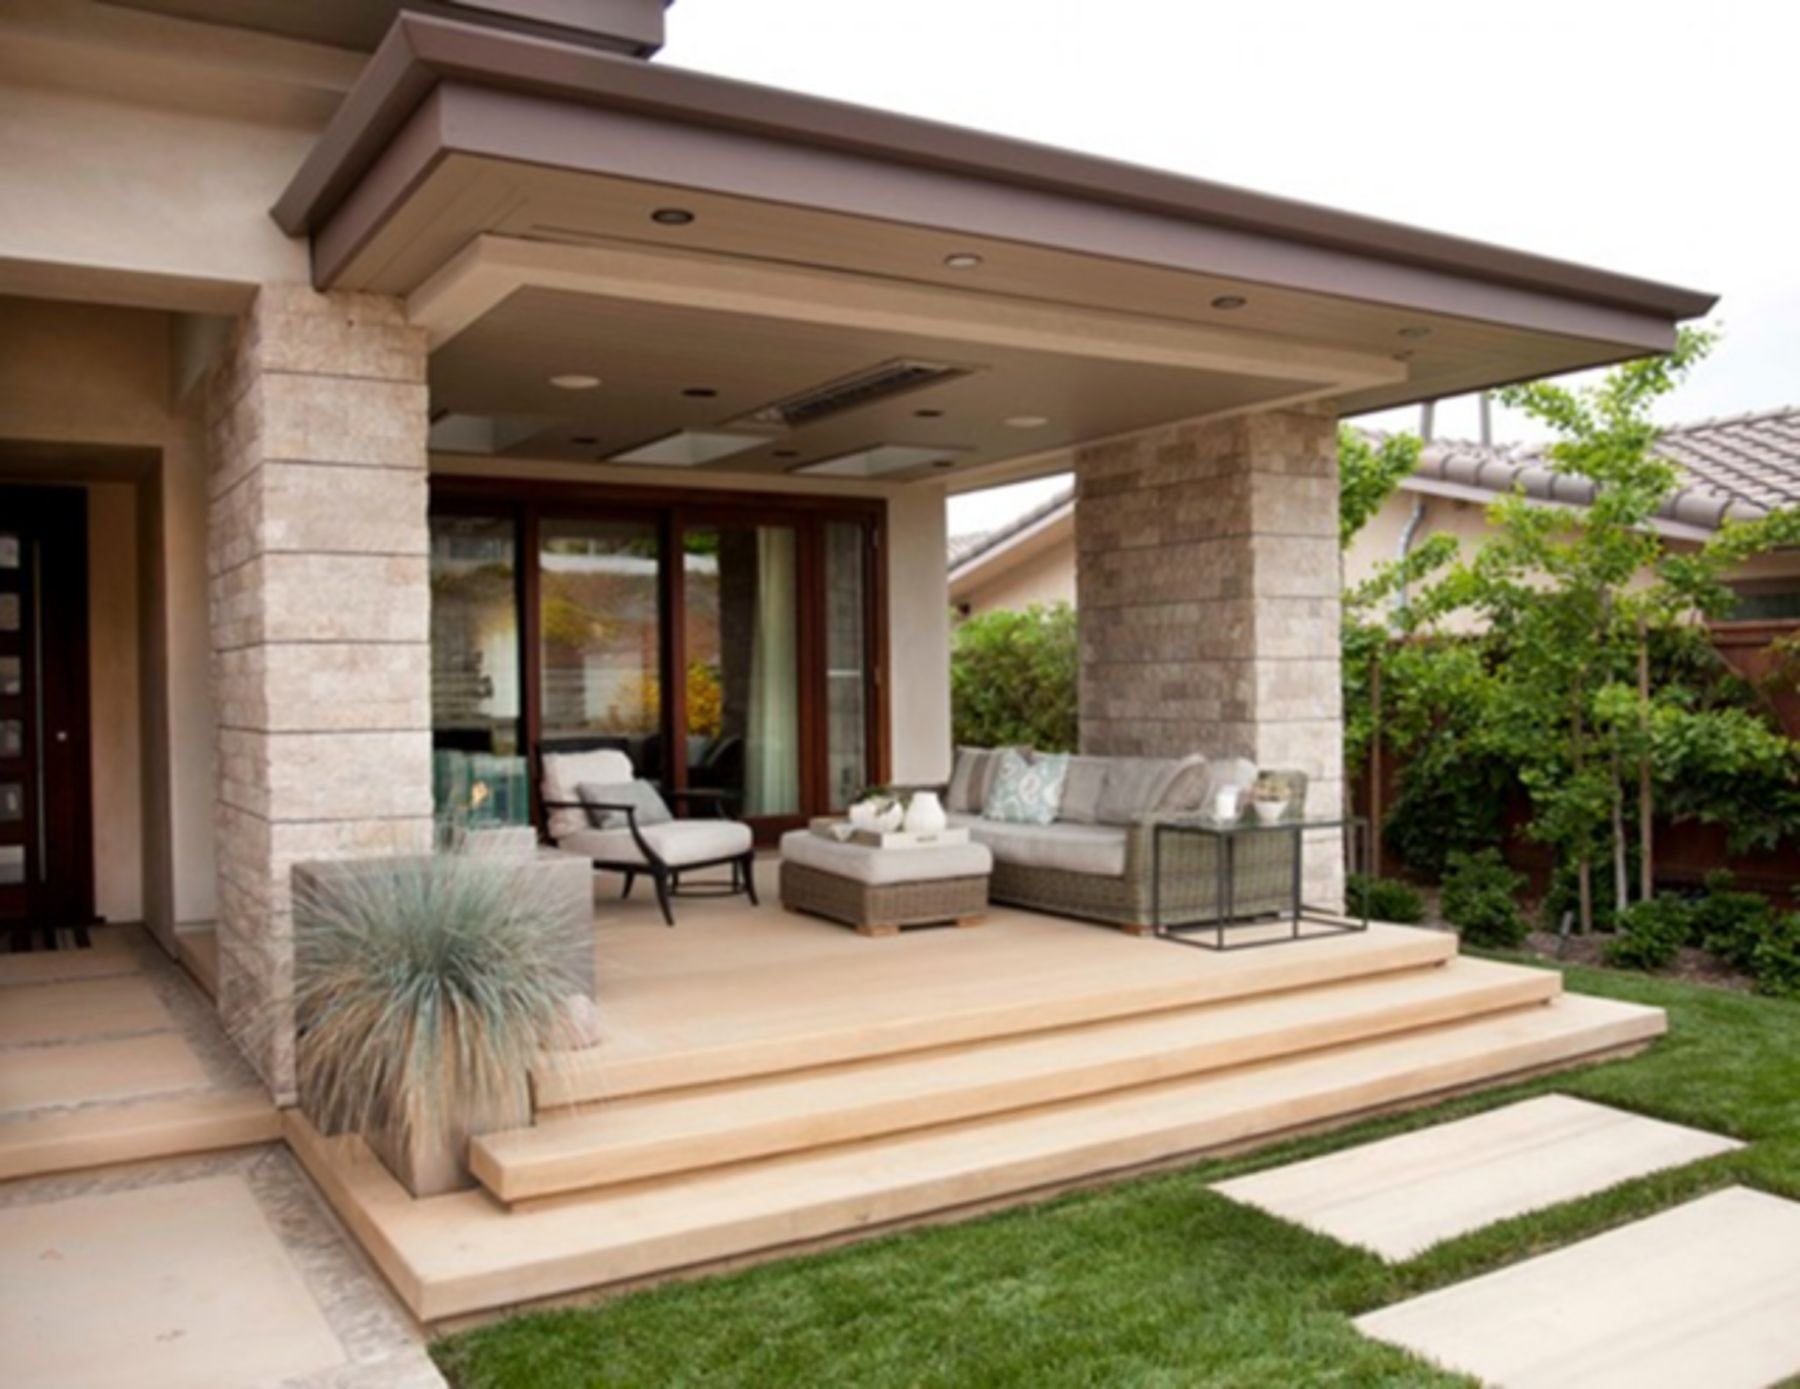 8 Beautiful Minimalist House Design Ideas With Front Porch